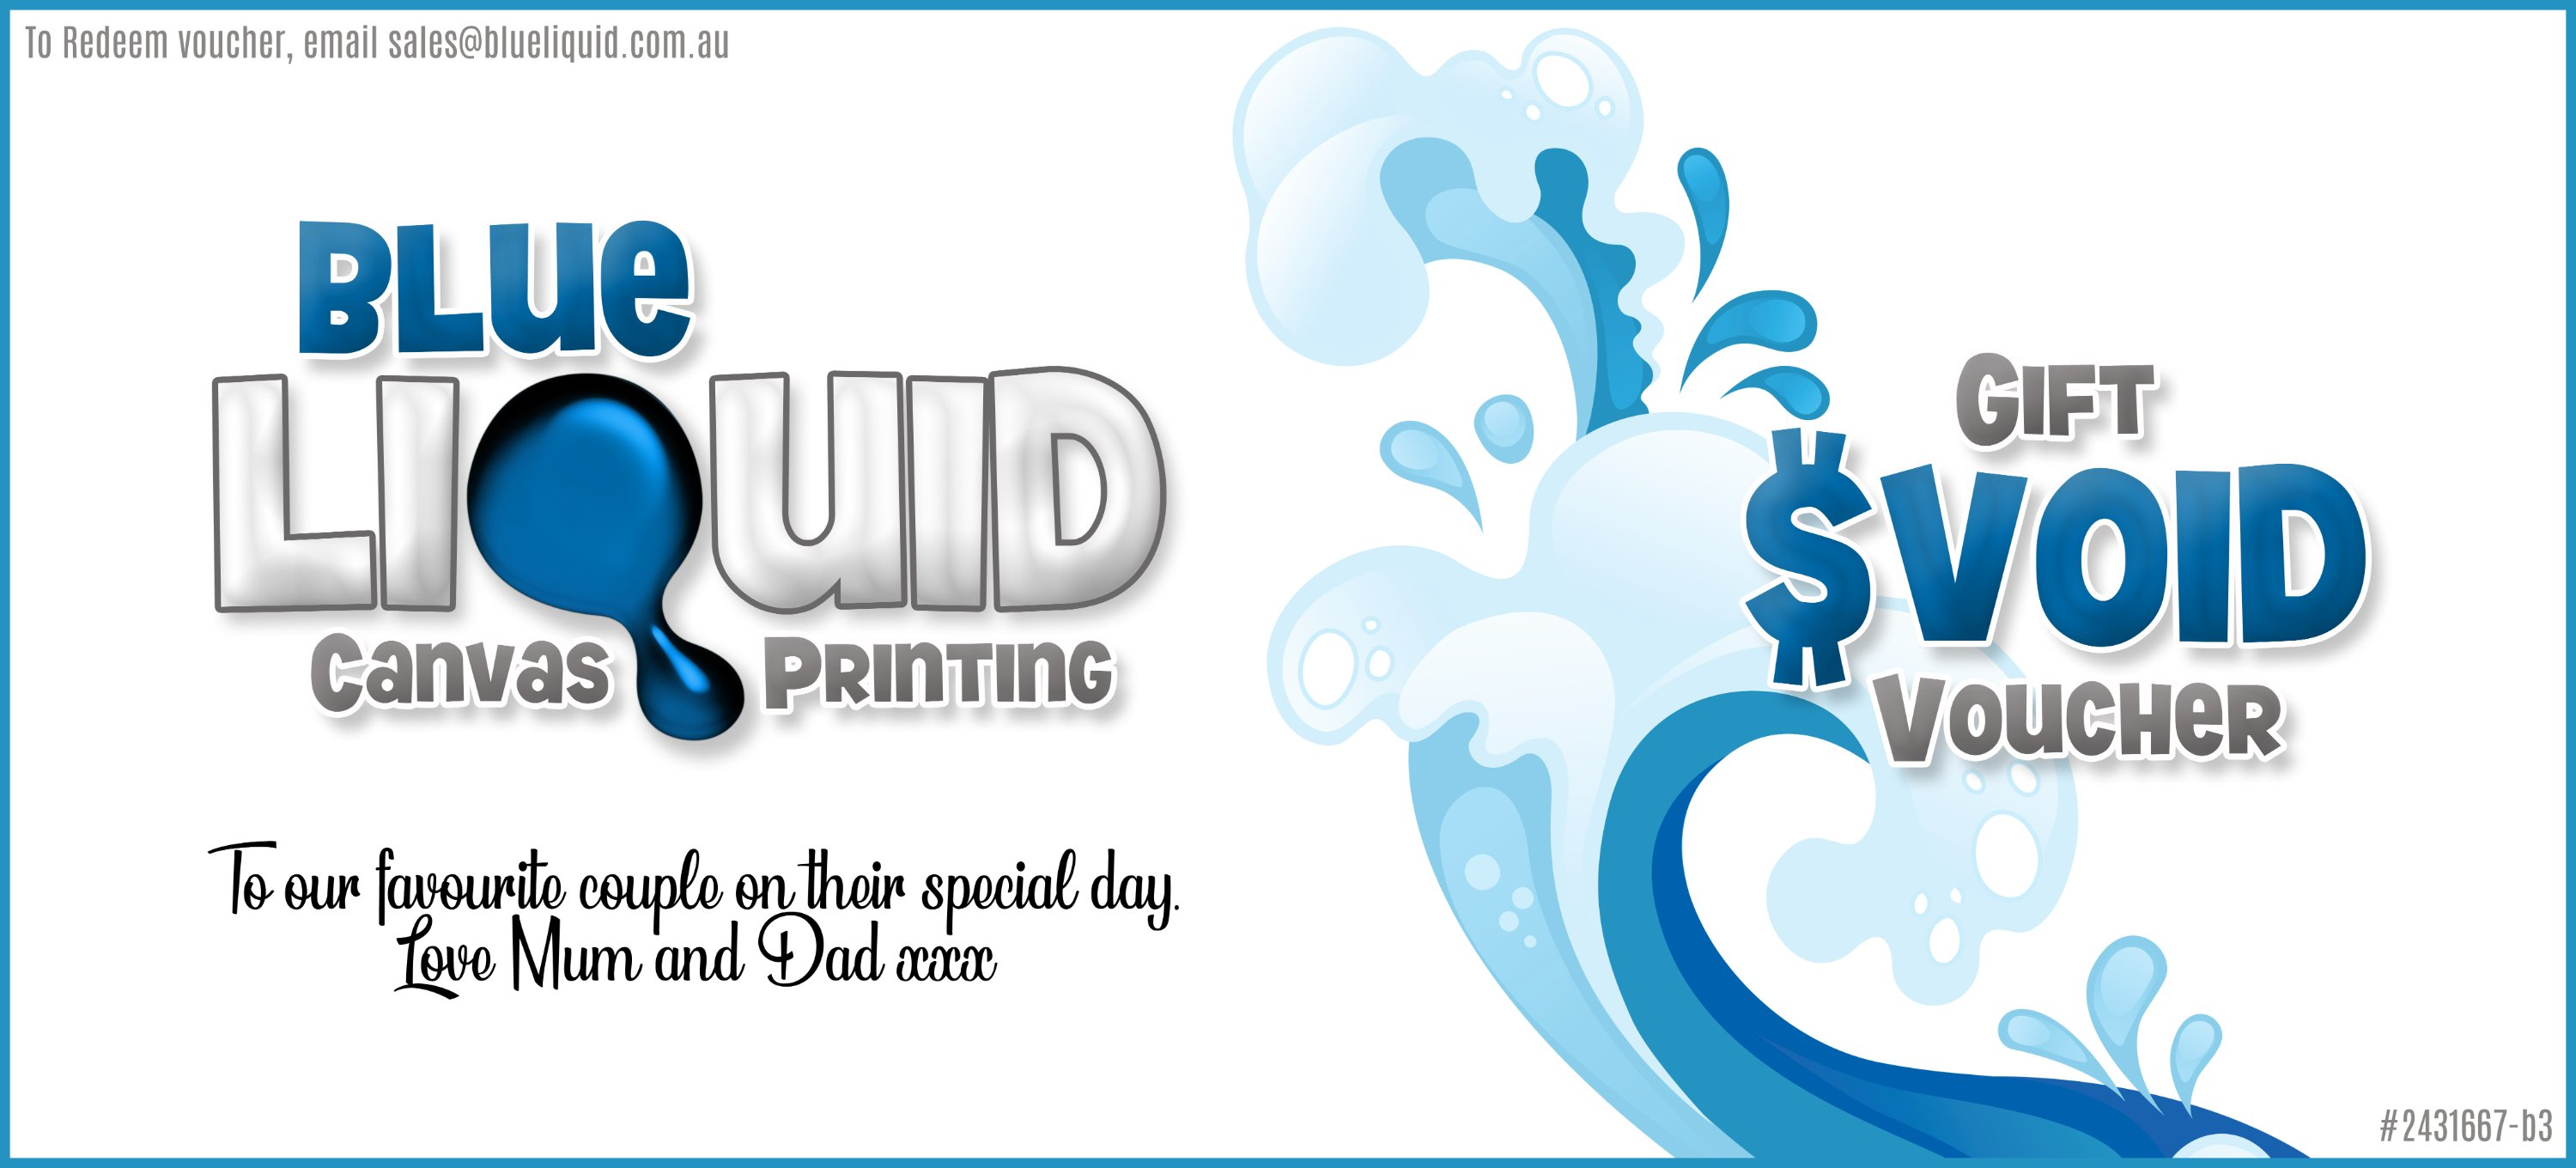 Email Gift Vouchers Canvas Printing Brisbane Blueliquid Canvas Printing